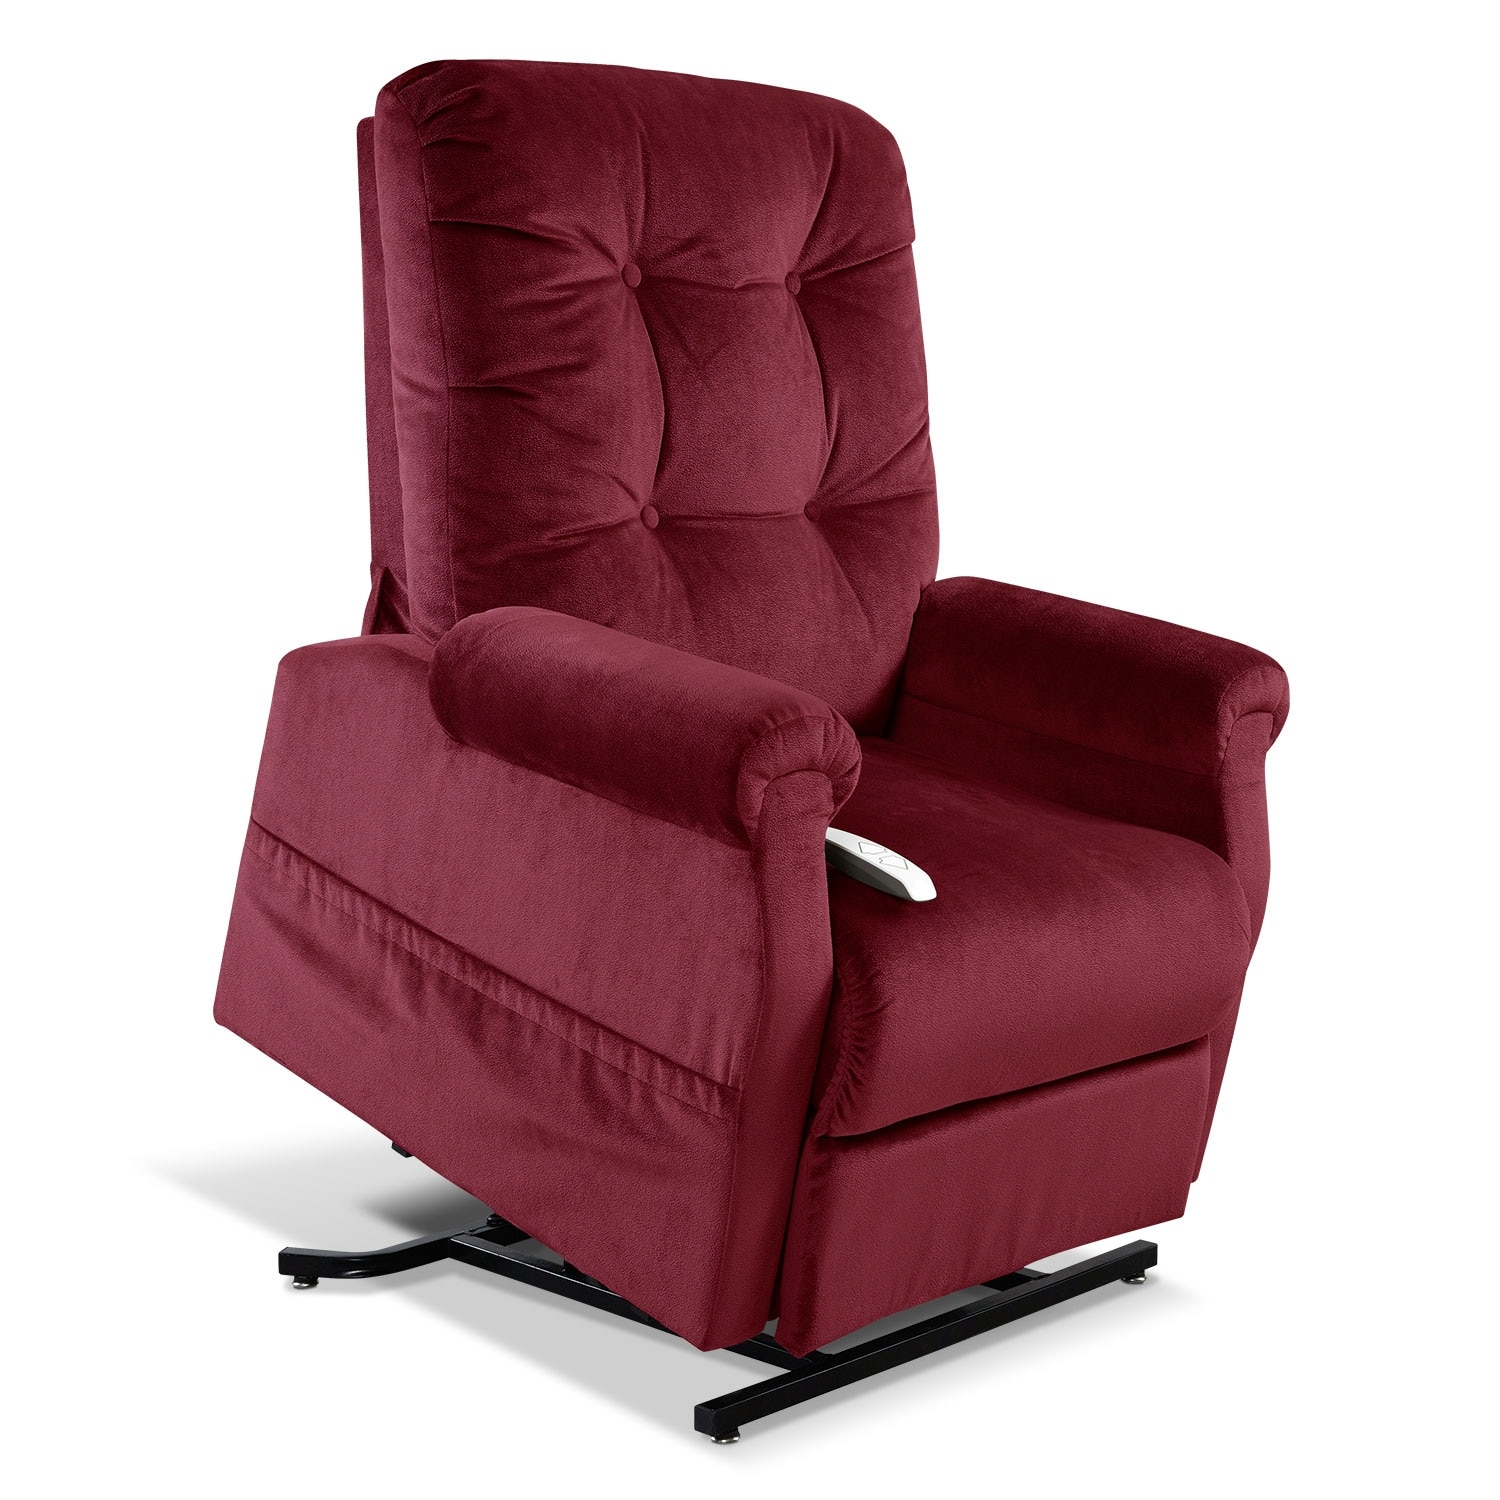 Recliners And Glider Chairs Value City Value City